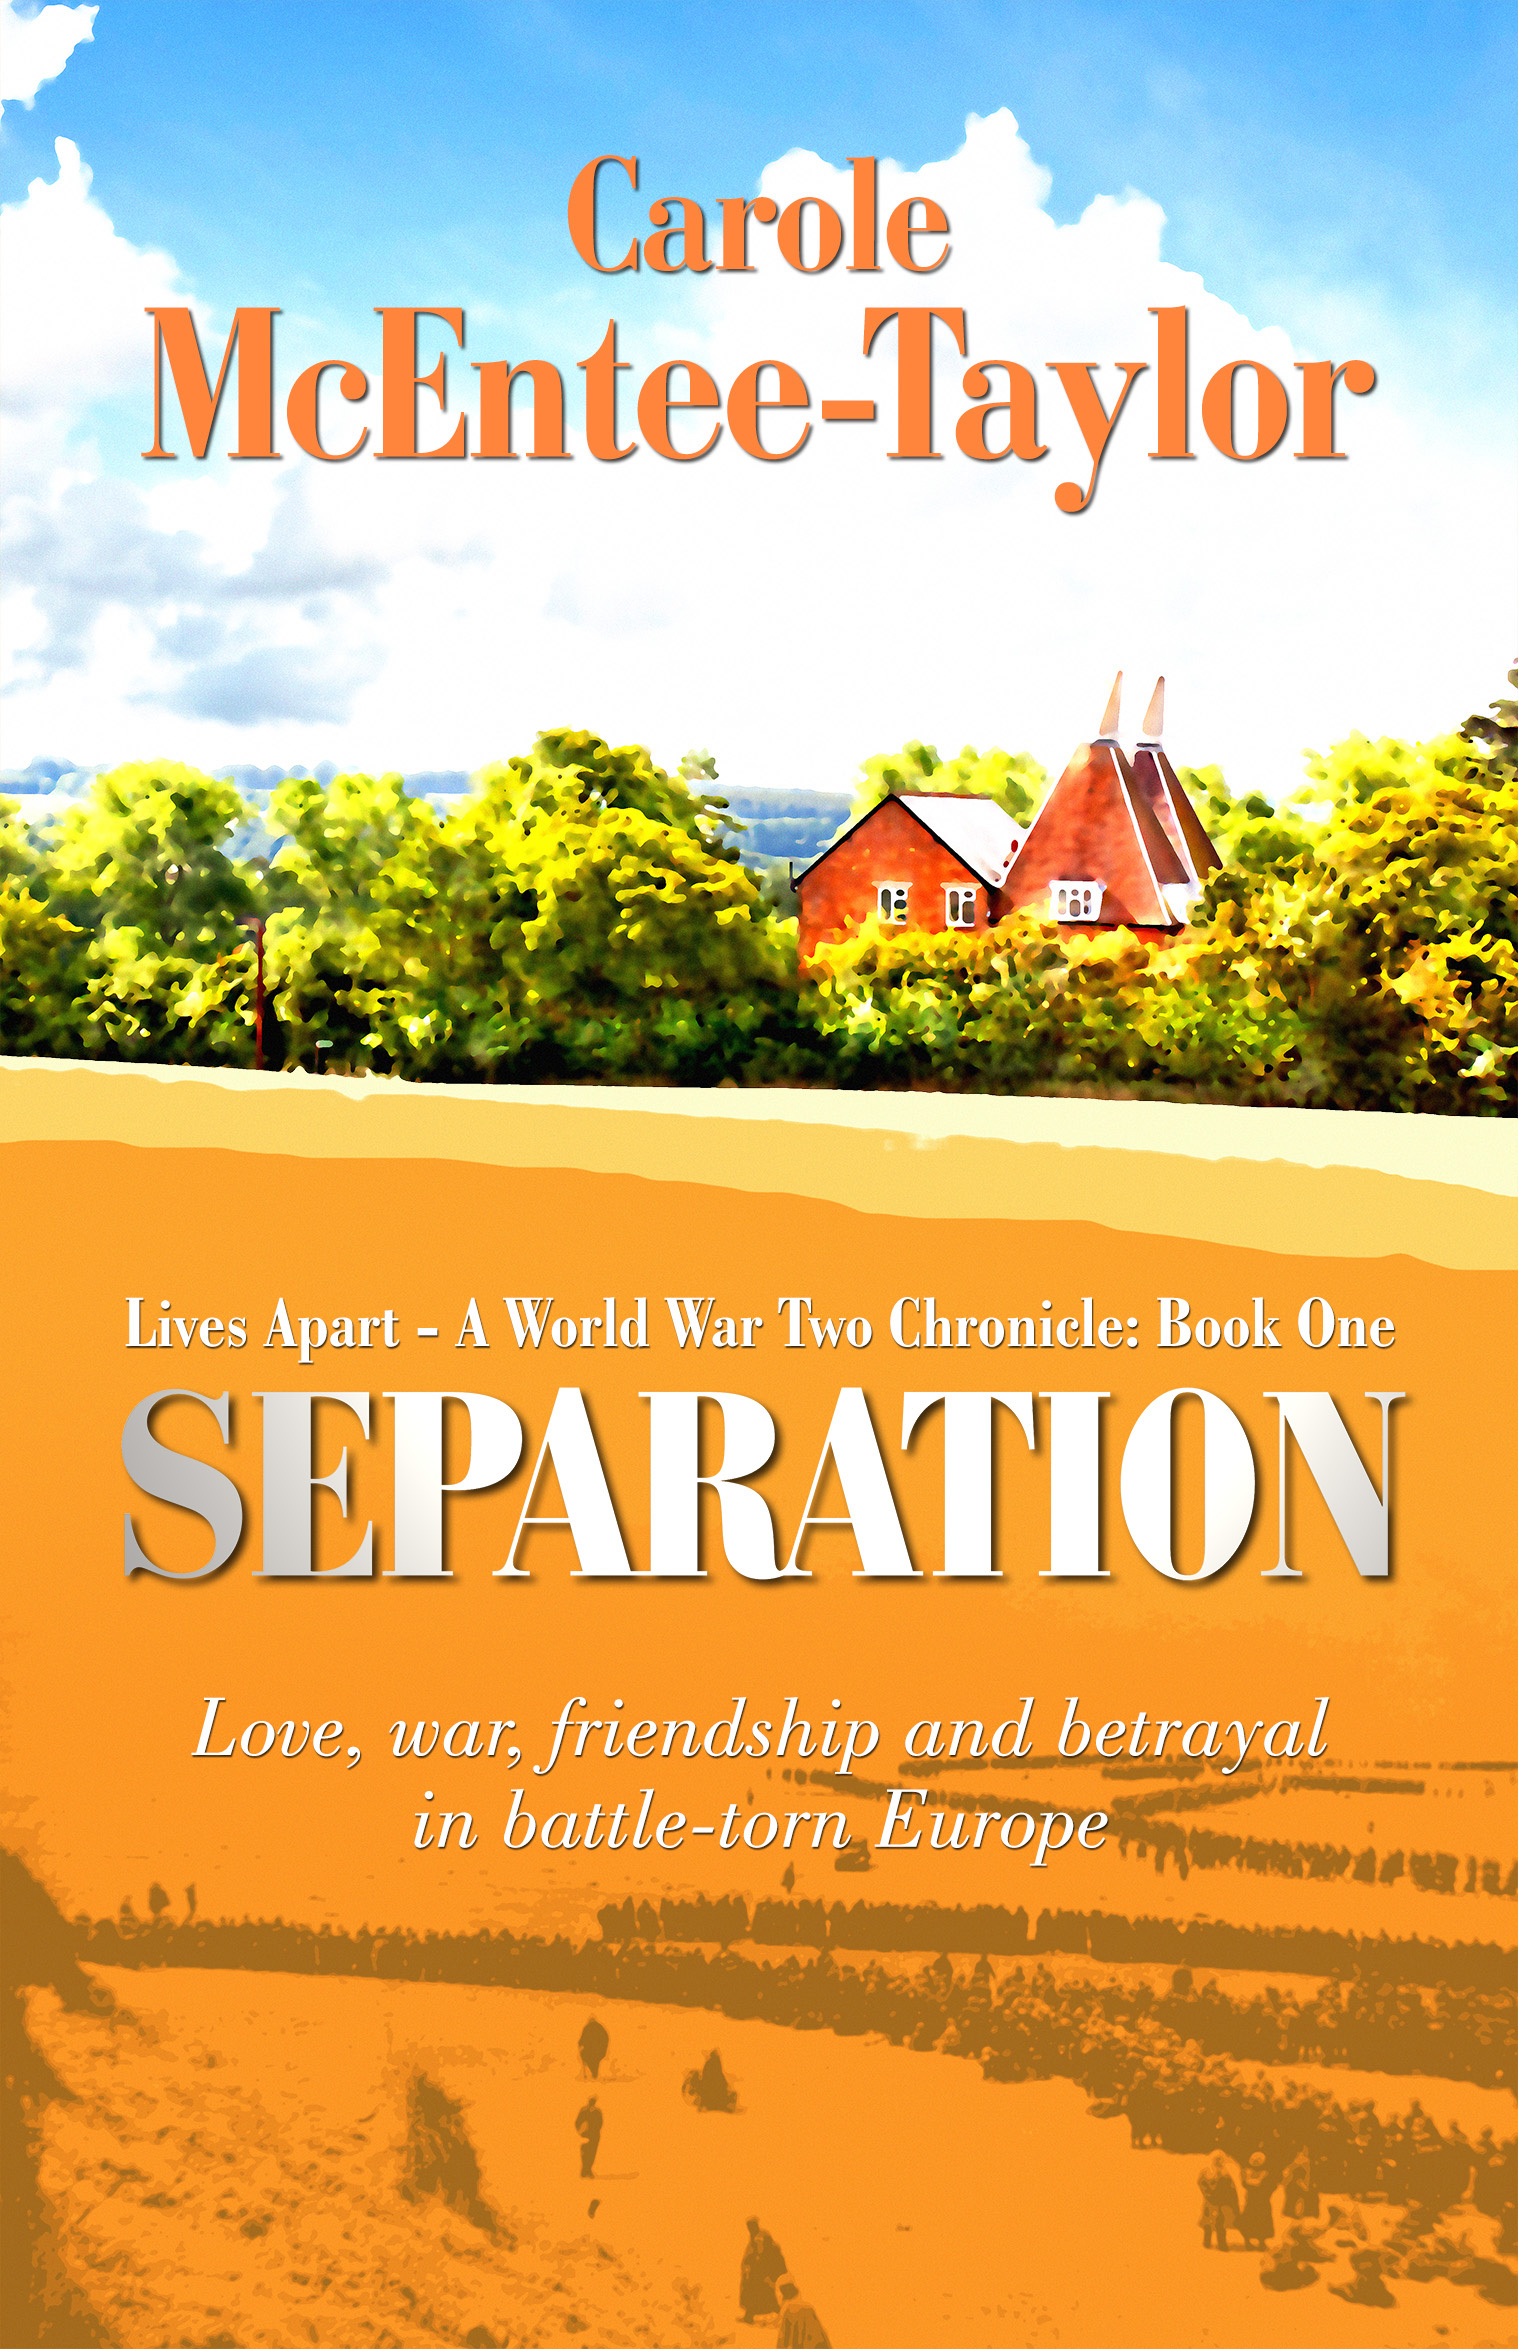 Separation by Carole McEntee-Taylor front cover graphic image.